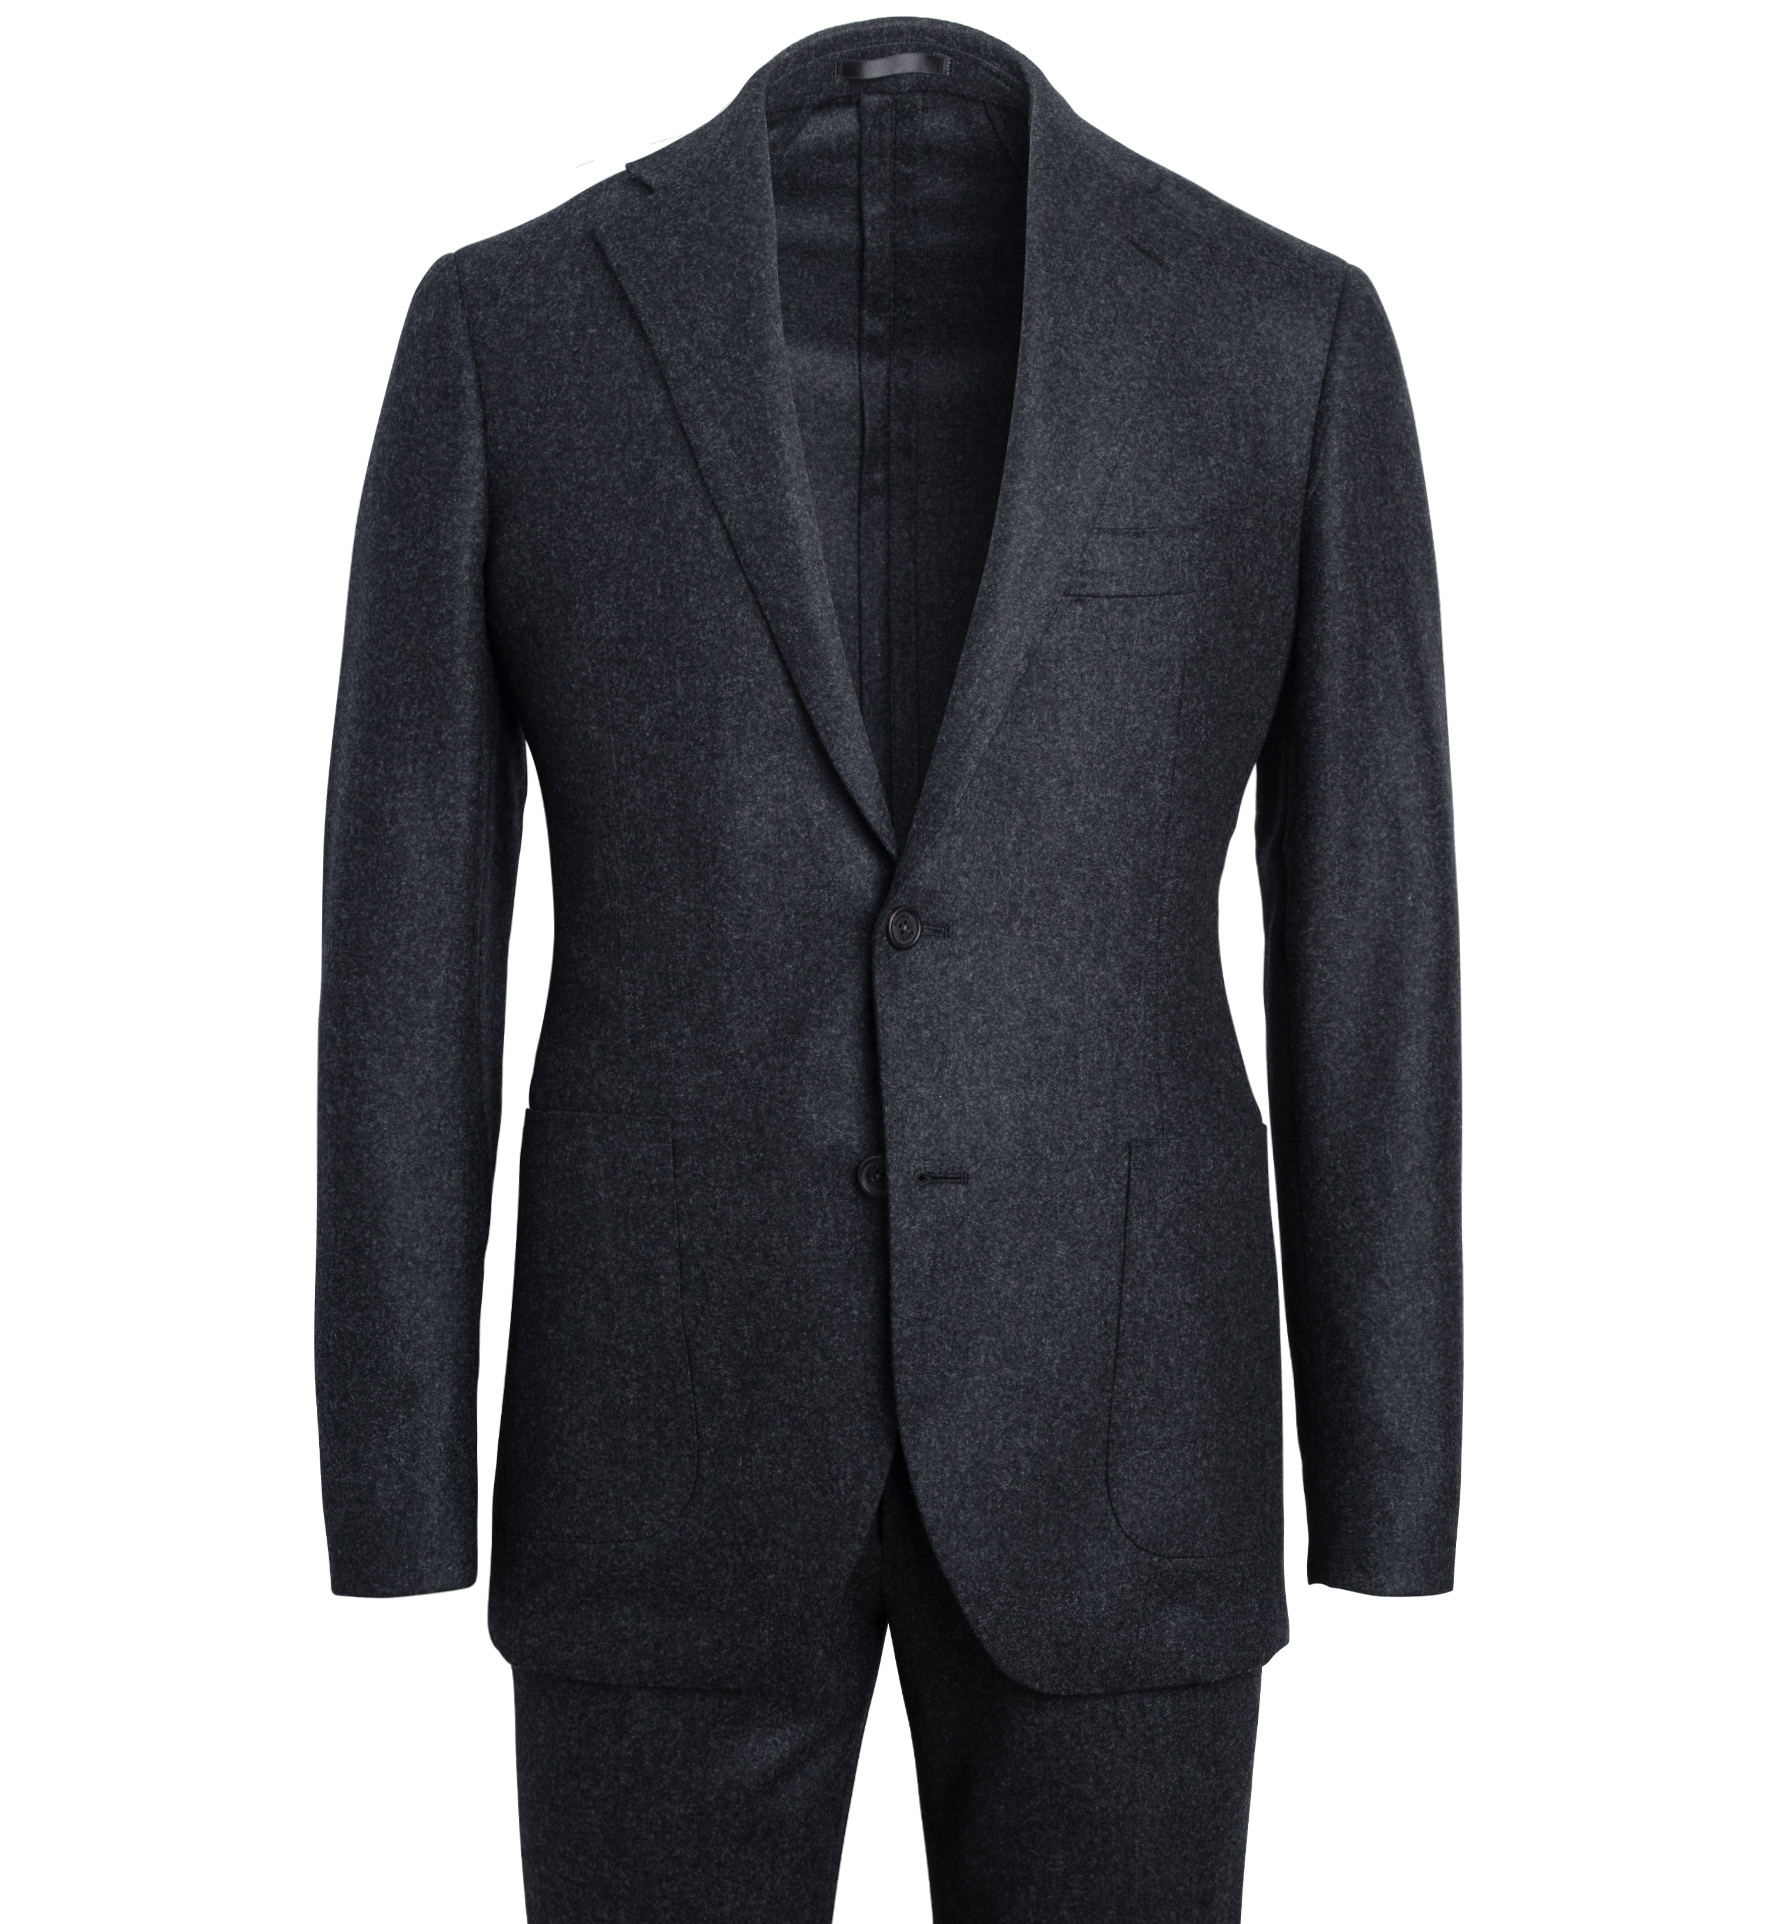 Zoom Image of Bedford Charcoal Wool Flannel Suit